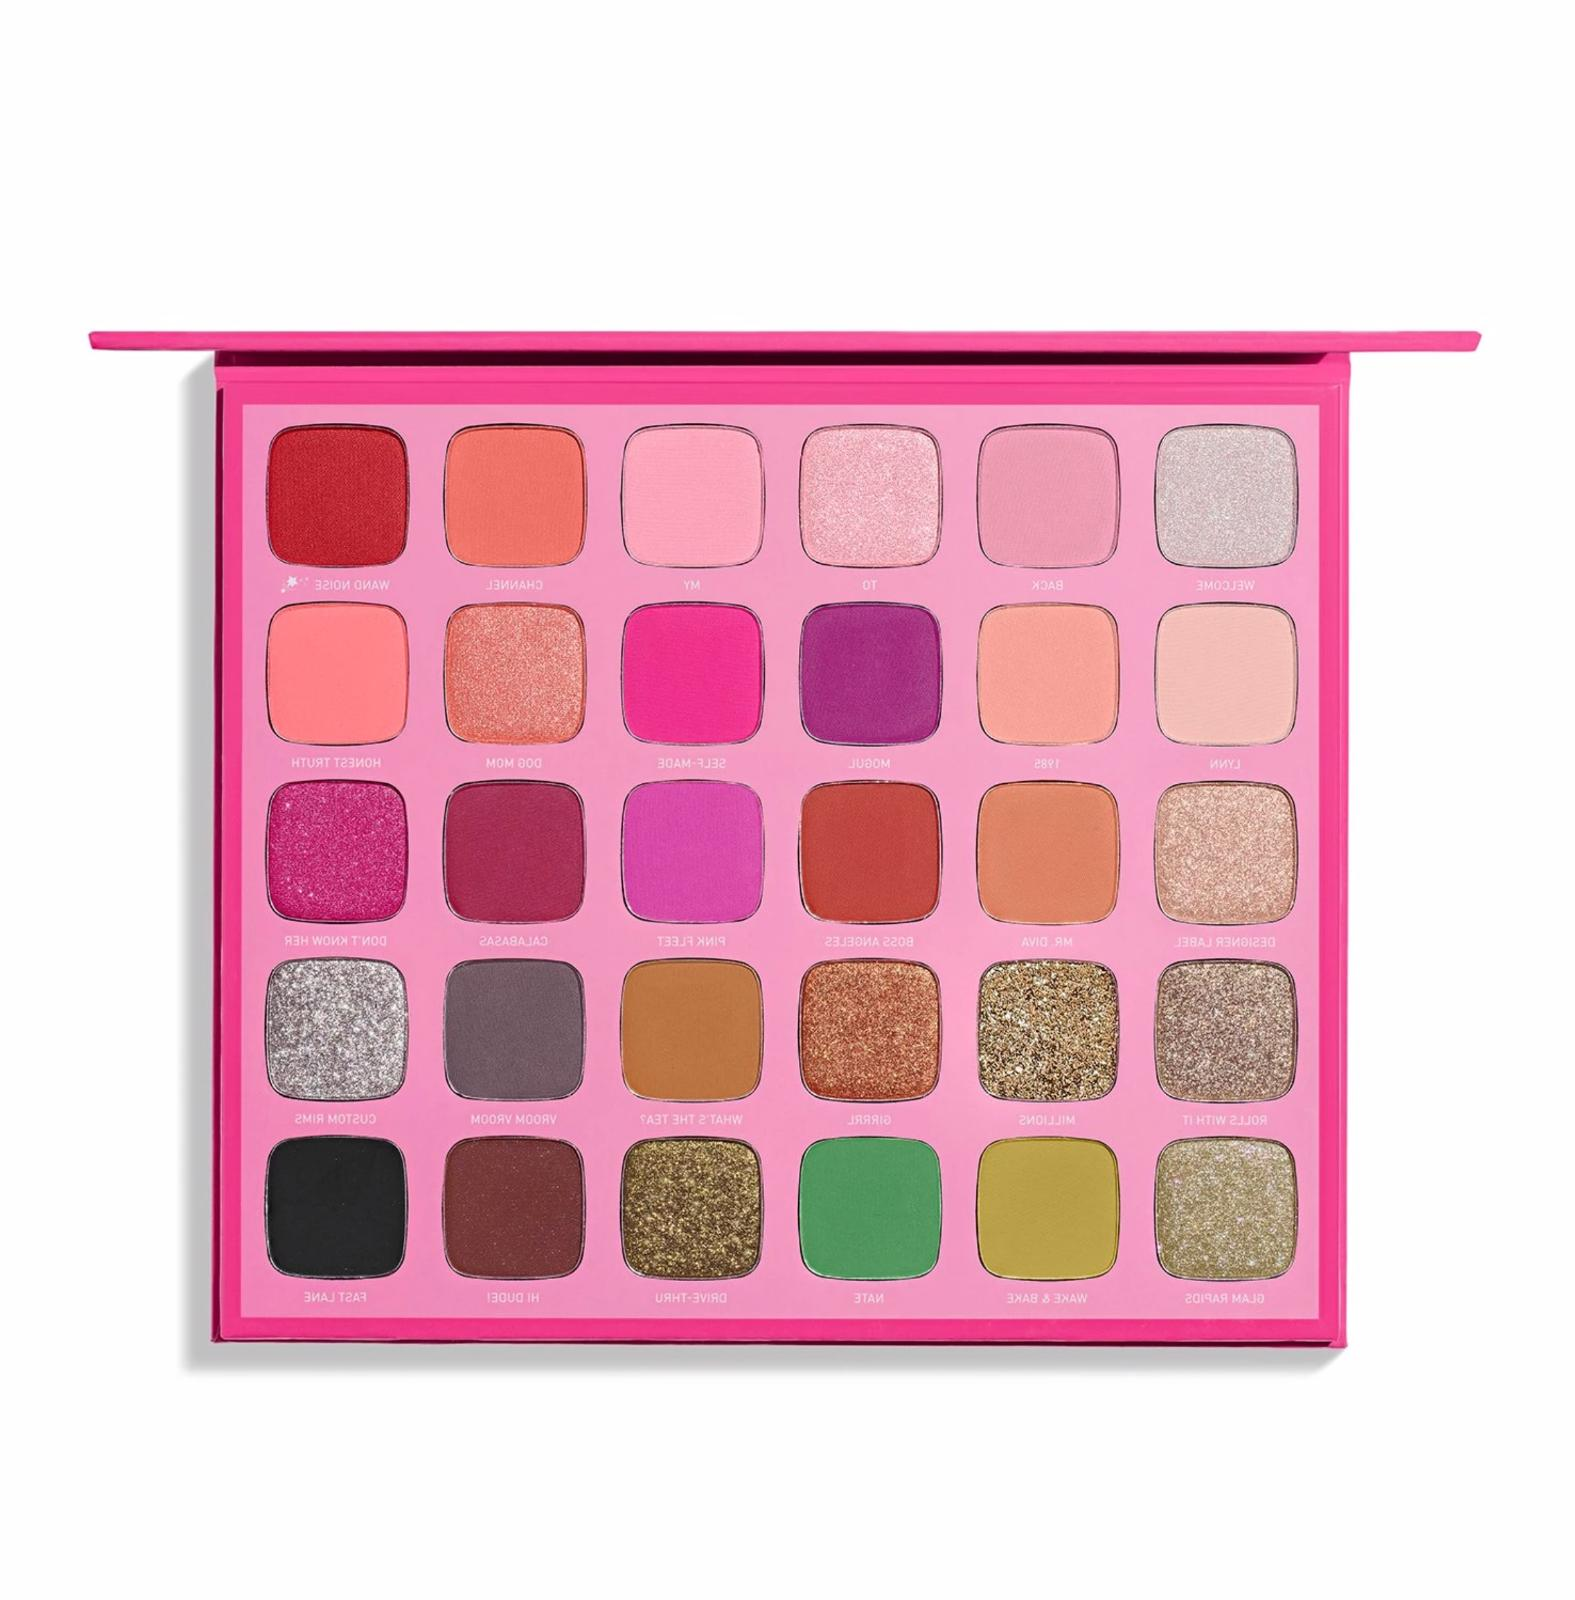 artistry eyeshadow palette 100 percent authentic w